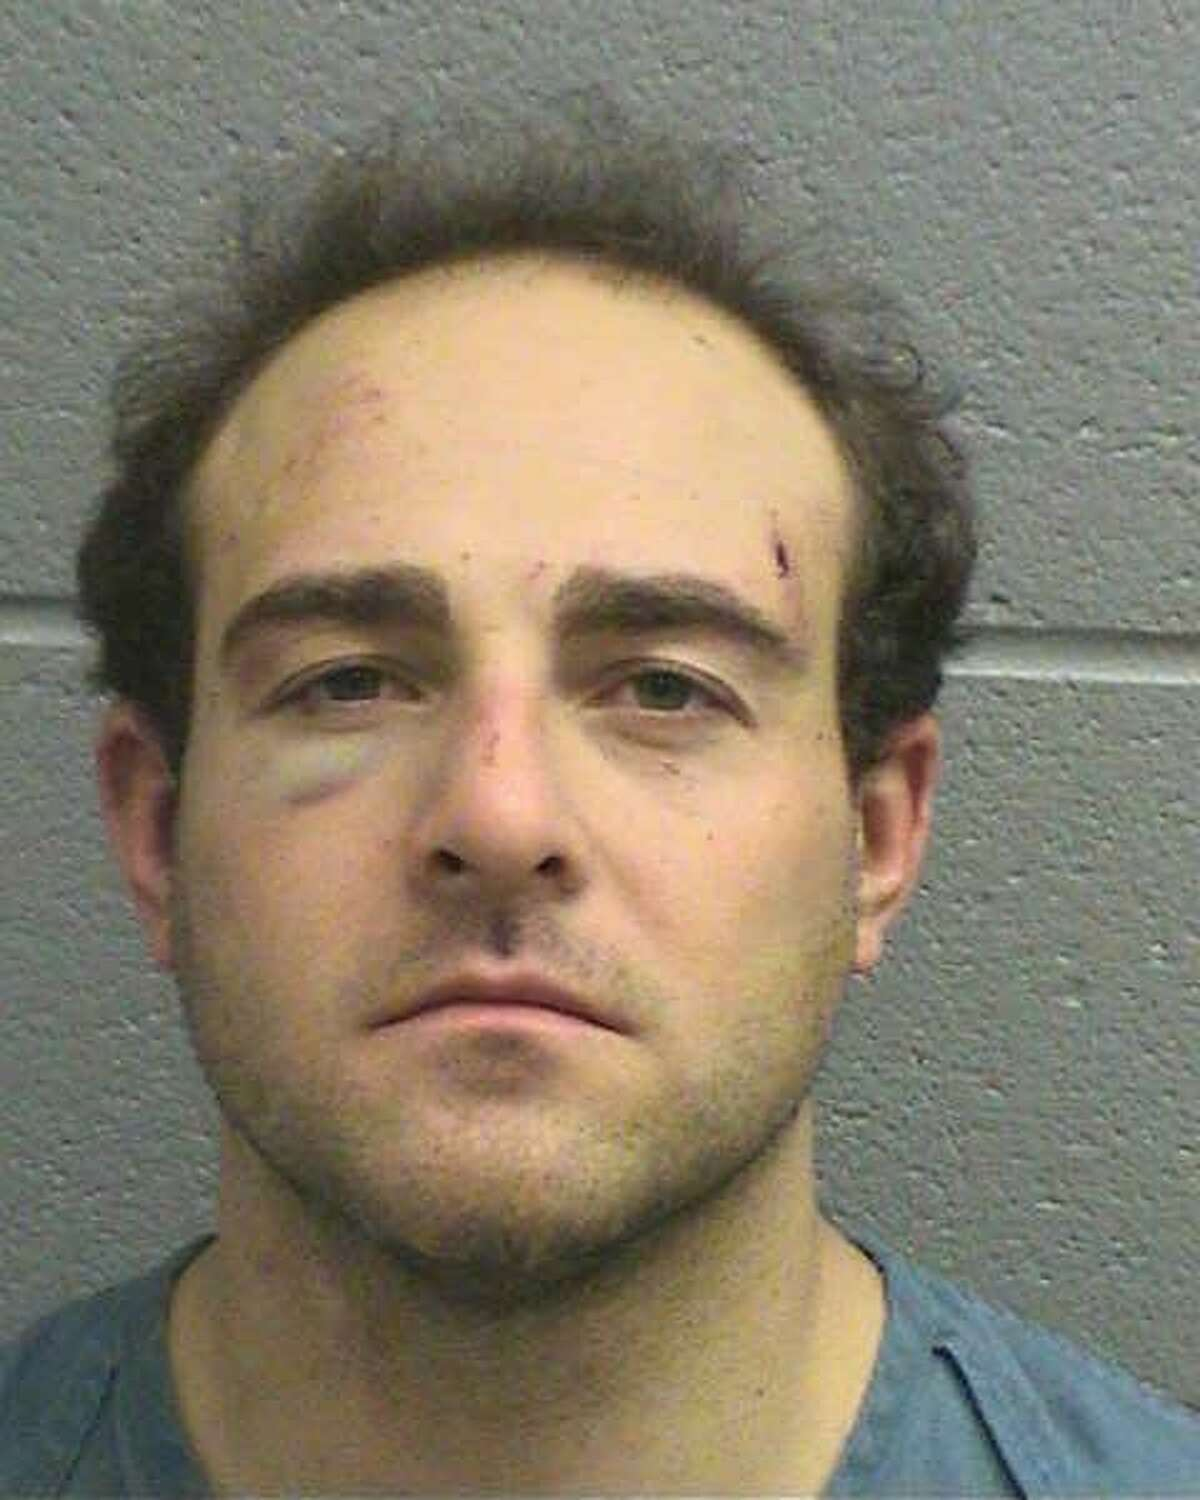 """William Charles Conrad Barnes, 32, of Midland, was arrested May 18 on a first-degree felony charge of aggravated assault against a public servant and a class B misdemeanor charge of hitting a sign.Barnes was high on """"Dust-Off"""" when he injured a police officer by breaking his leg in two places. Barnes had been fleeing on foot after he struck a sign while driving under the influence of the inhalant.If convicted, Barnes faces five to 99 years in prison for the felony charge."""